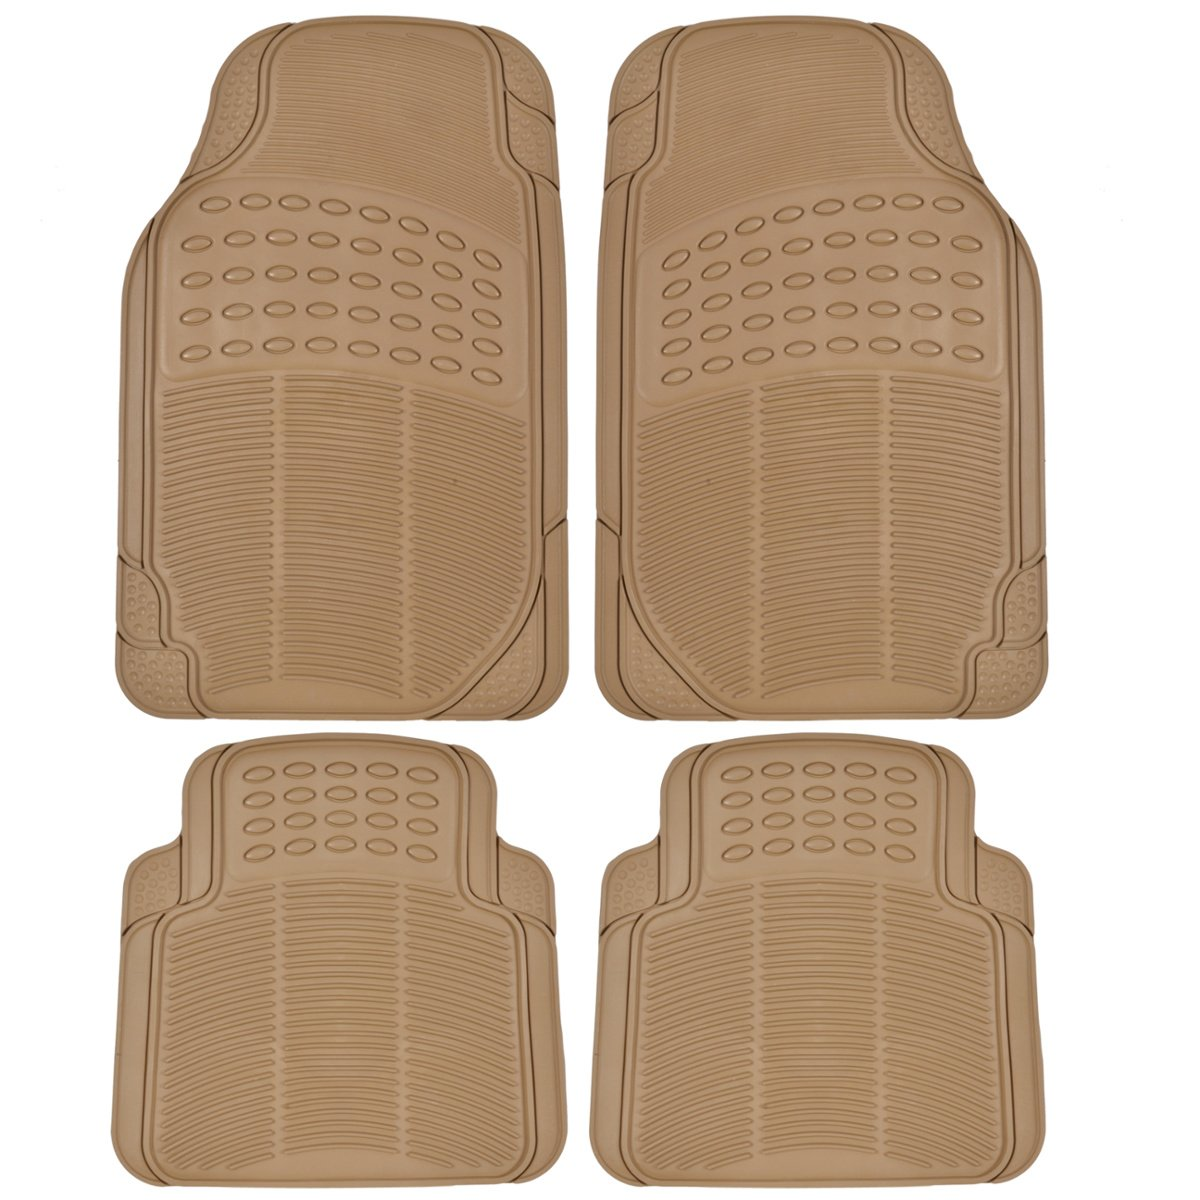 Gray Heavy Duty 4pc Front /& Rear Rubber Mats All Weather Protection BDK Custom Auto Crews Universal Car Truck SUV